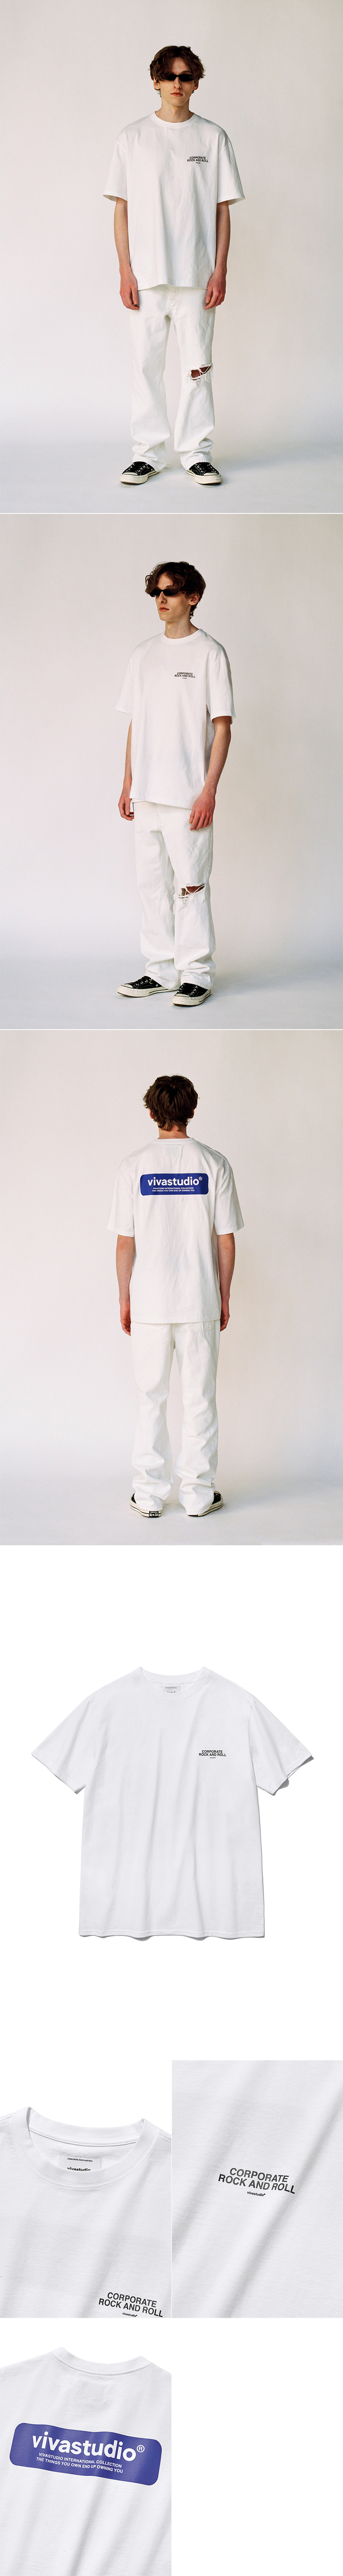 비바스튜디오(VIVASTUDIO) BOX LOGO SHORT SLEEVE IS [WHITE]